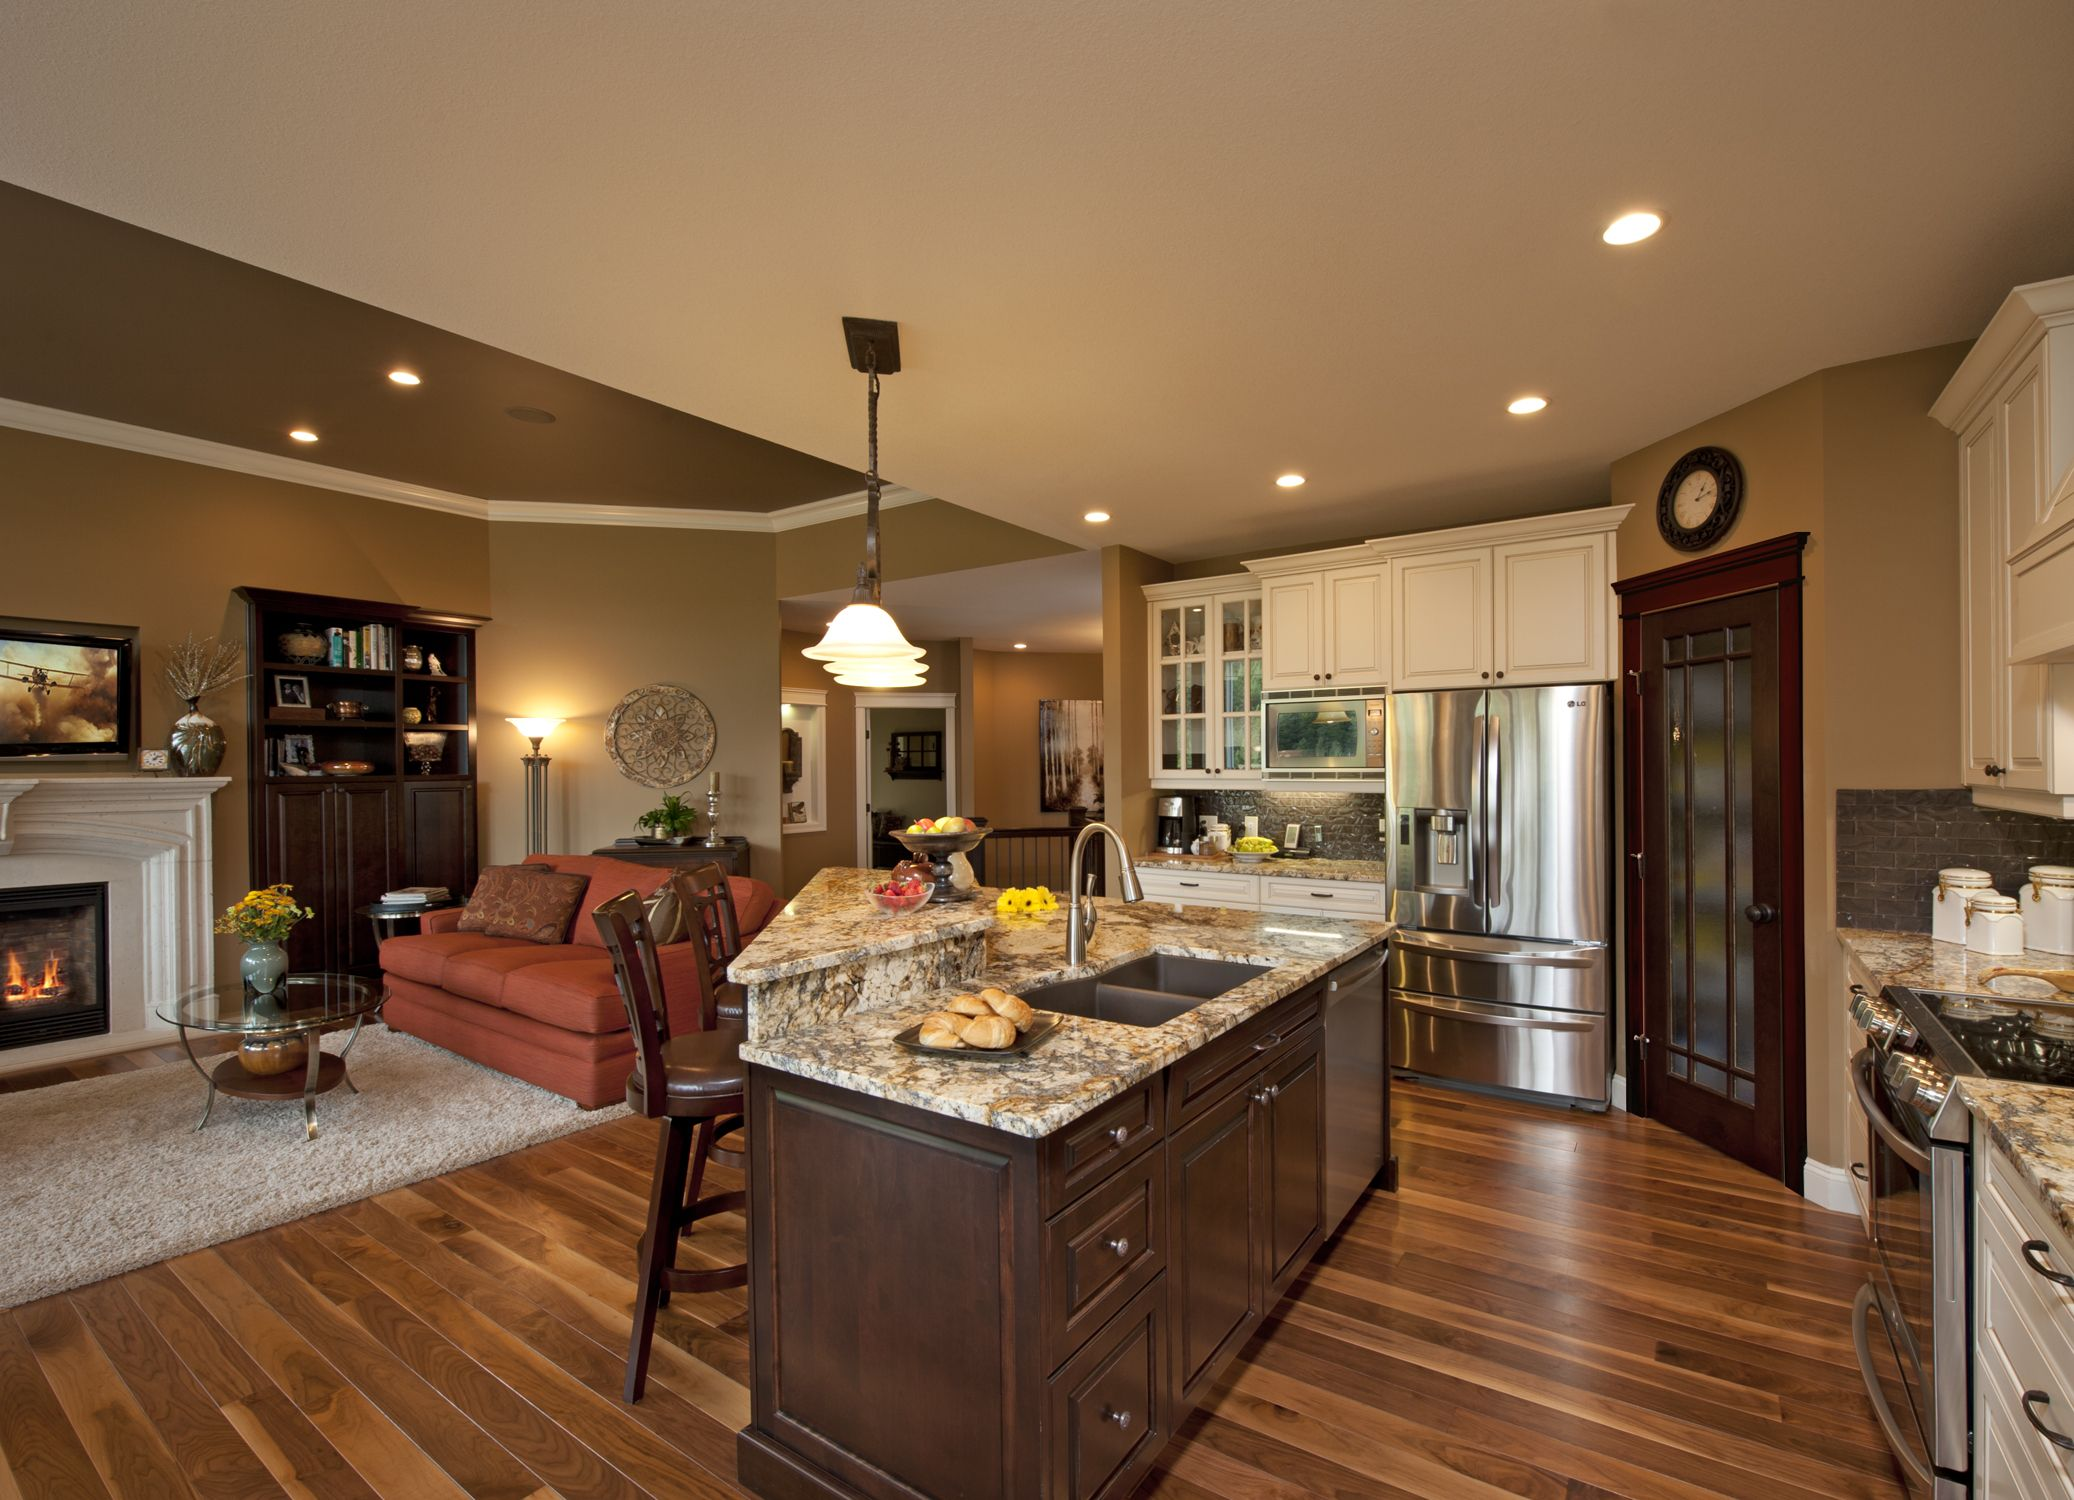 Another kitchen/family room combo | Kitchen Ideas ...